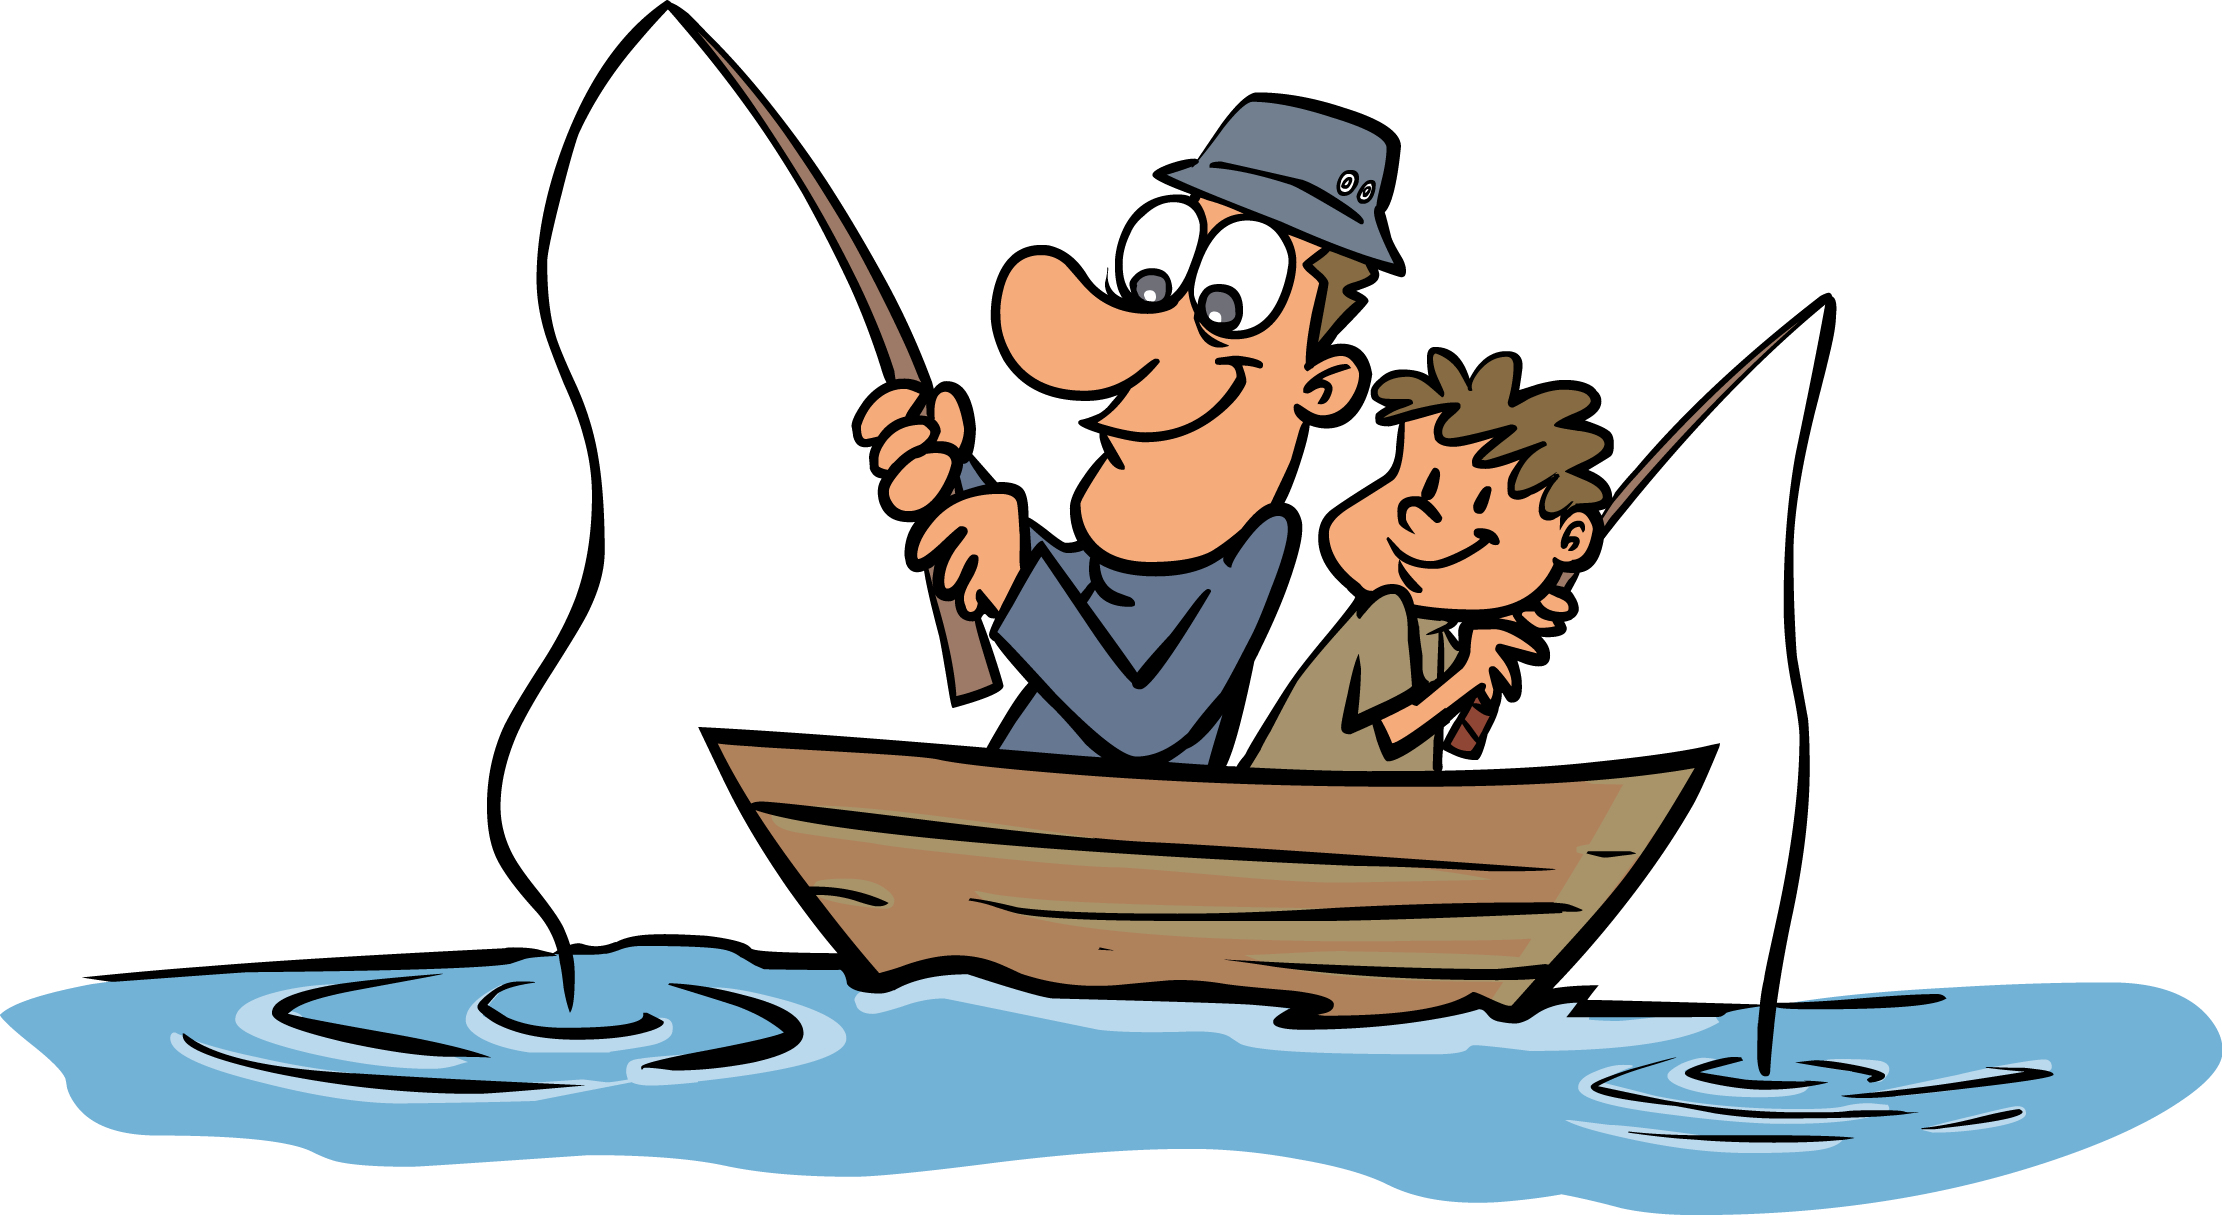 Cartoon png humor pinterest. Worm clipart fishing gear